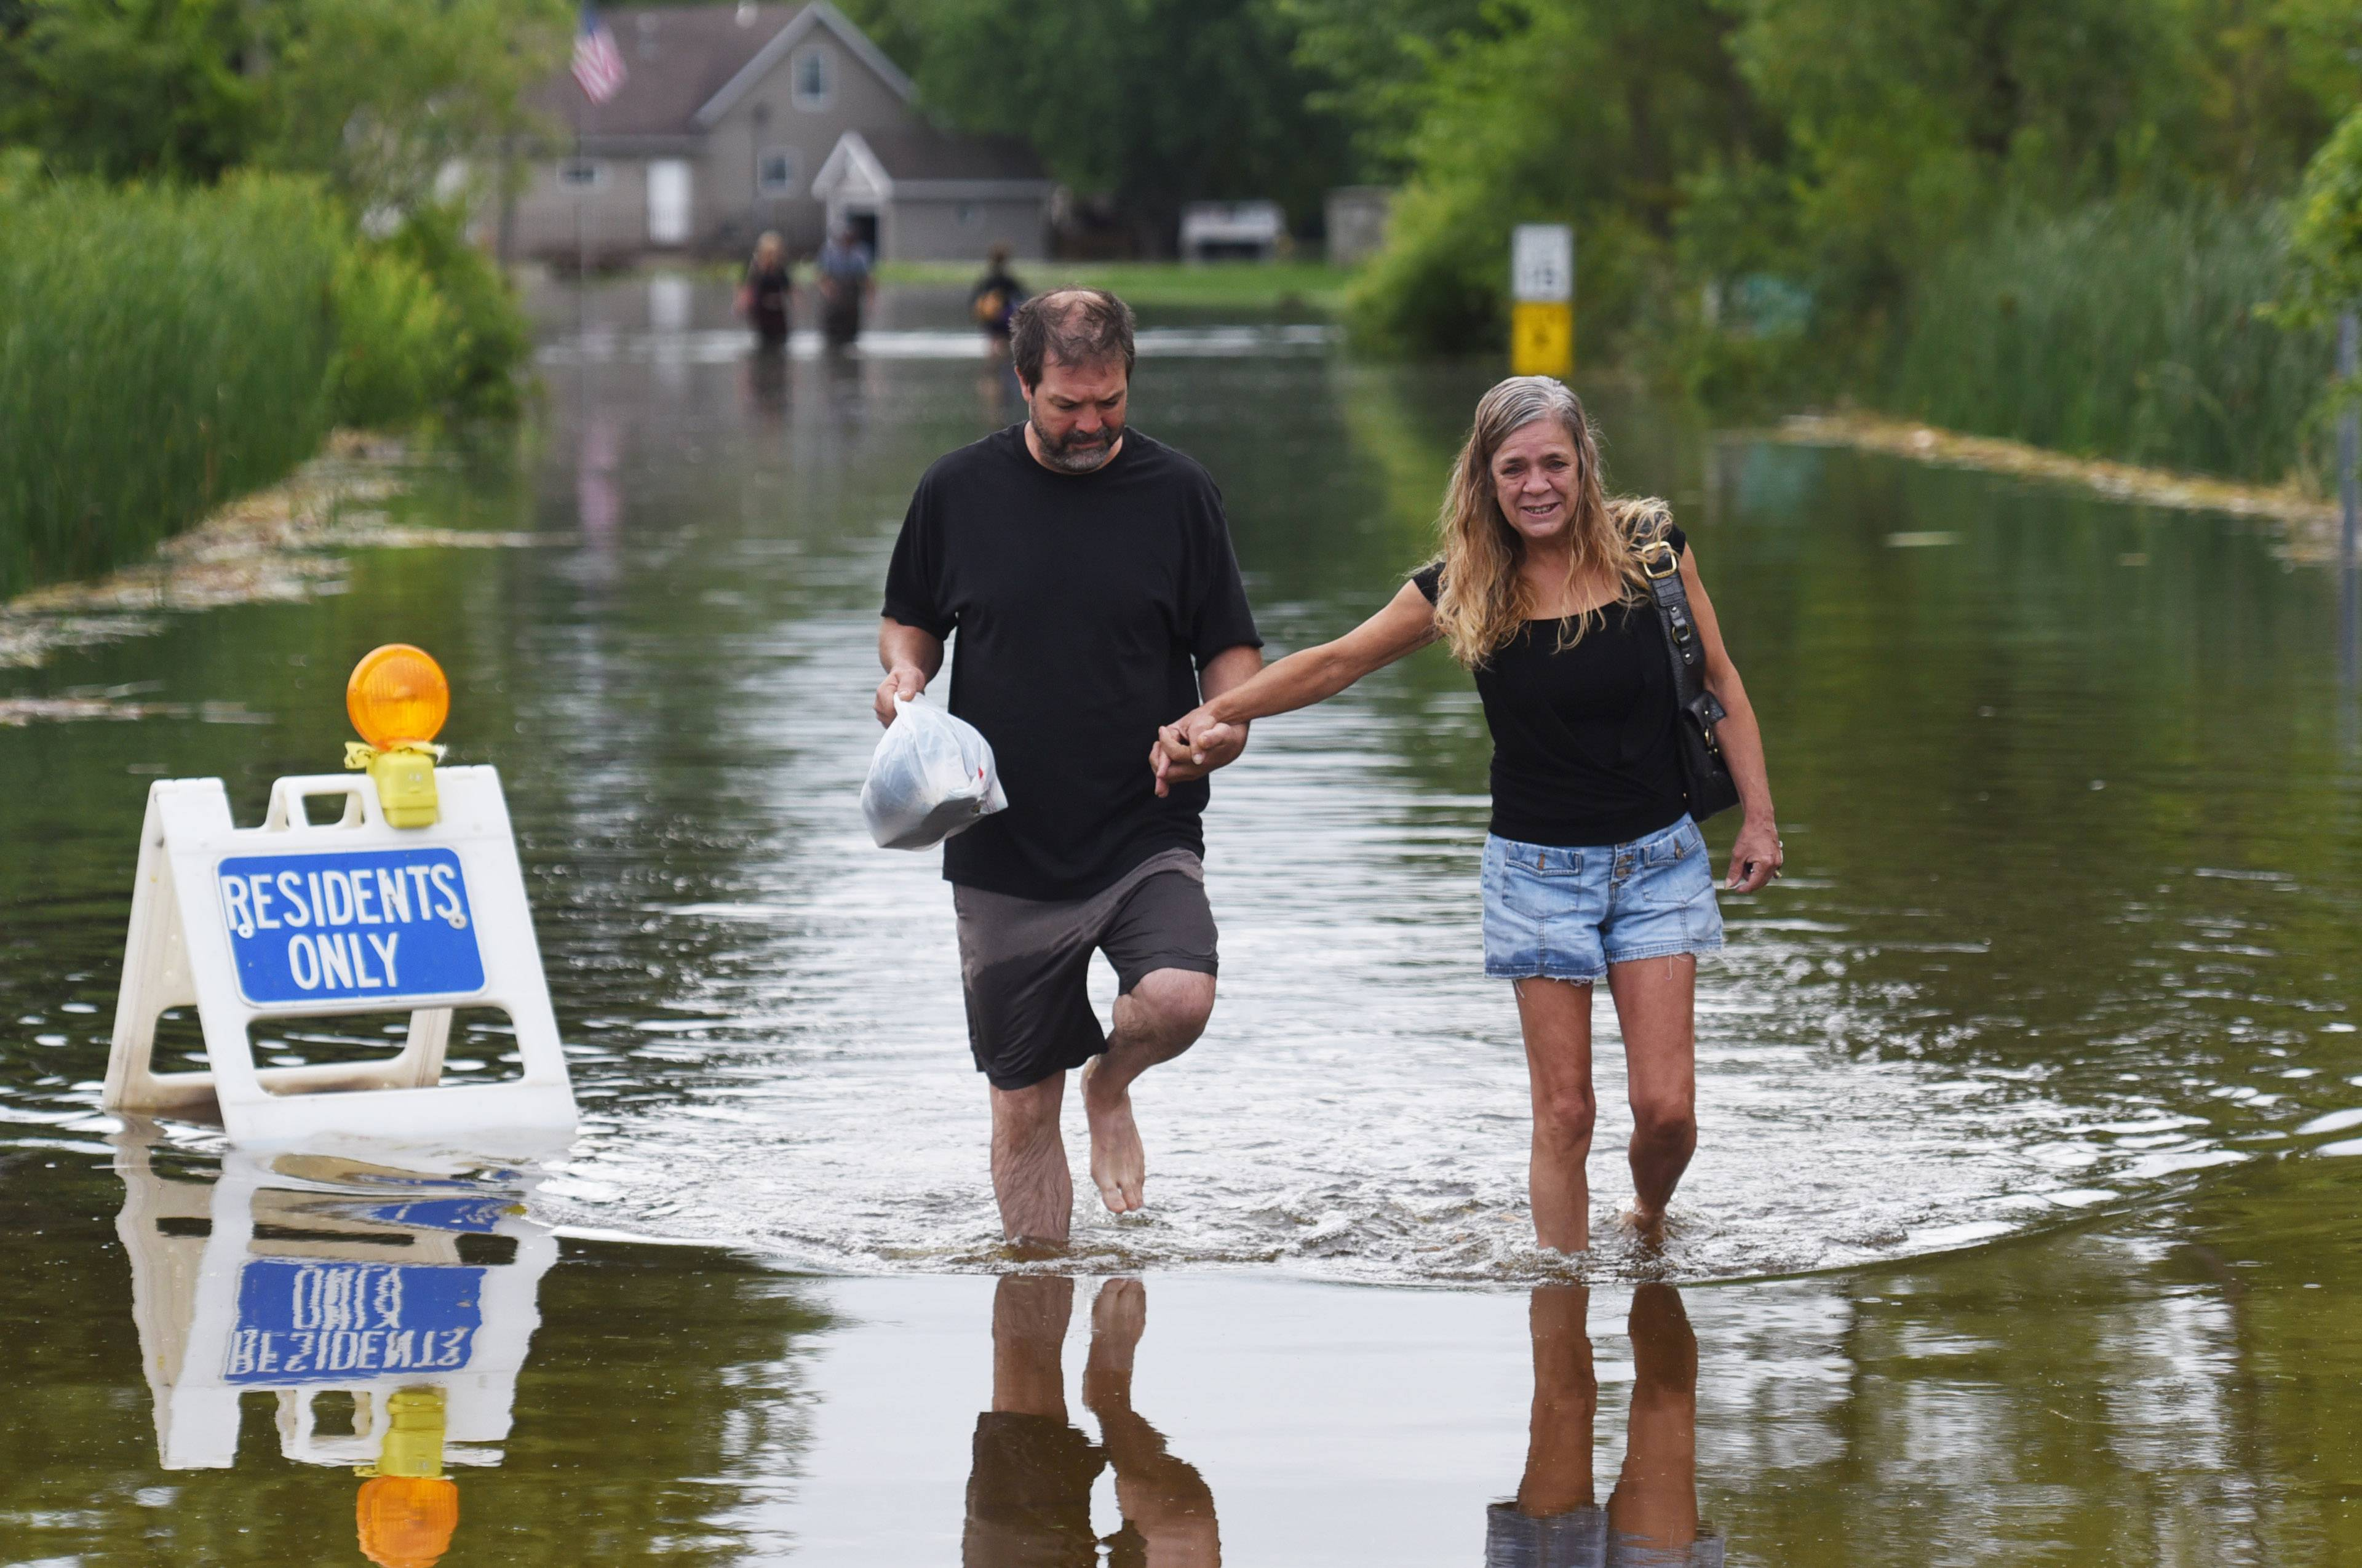 Dan Robinson and April Cissell walk through the flooded Knollwood Road in Ingleside Sunday morning. Knollwood Park subdivision residents have been parking along Route 59 and taking a boat or wading through the water to get to their homes.